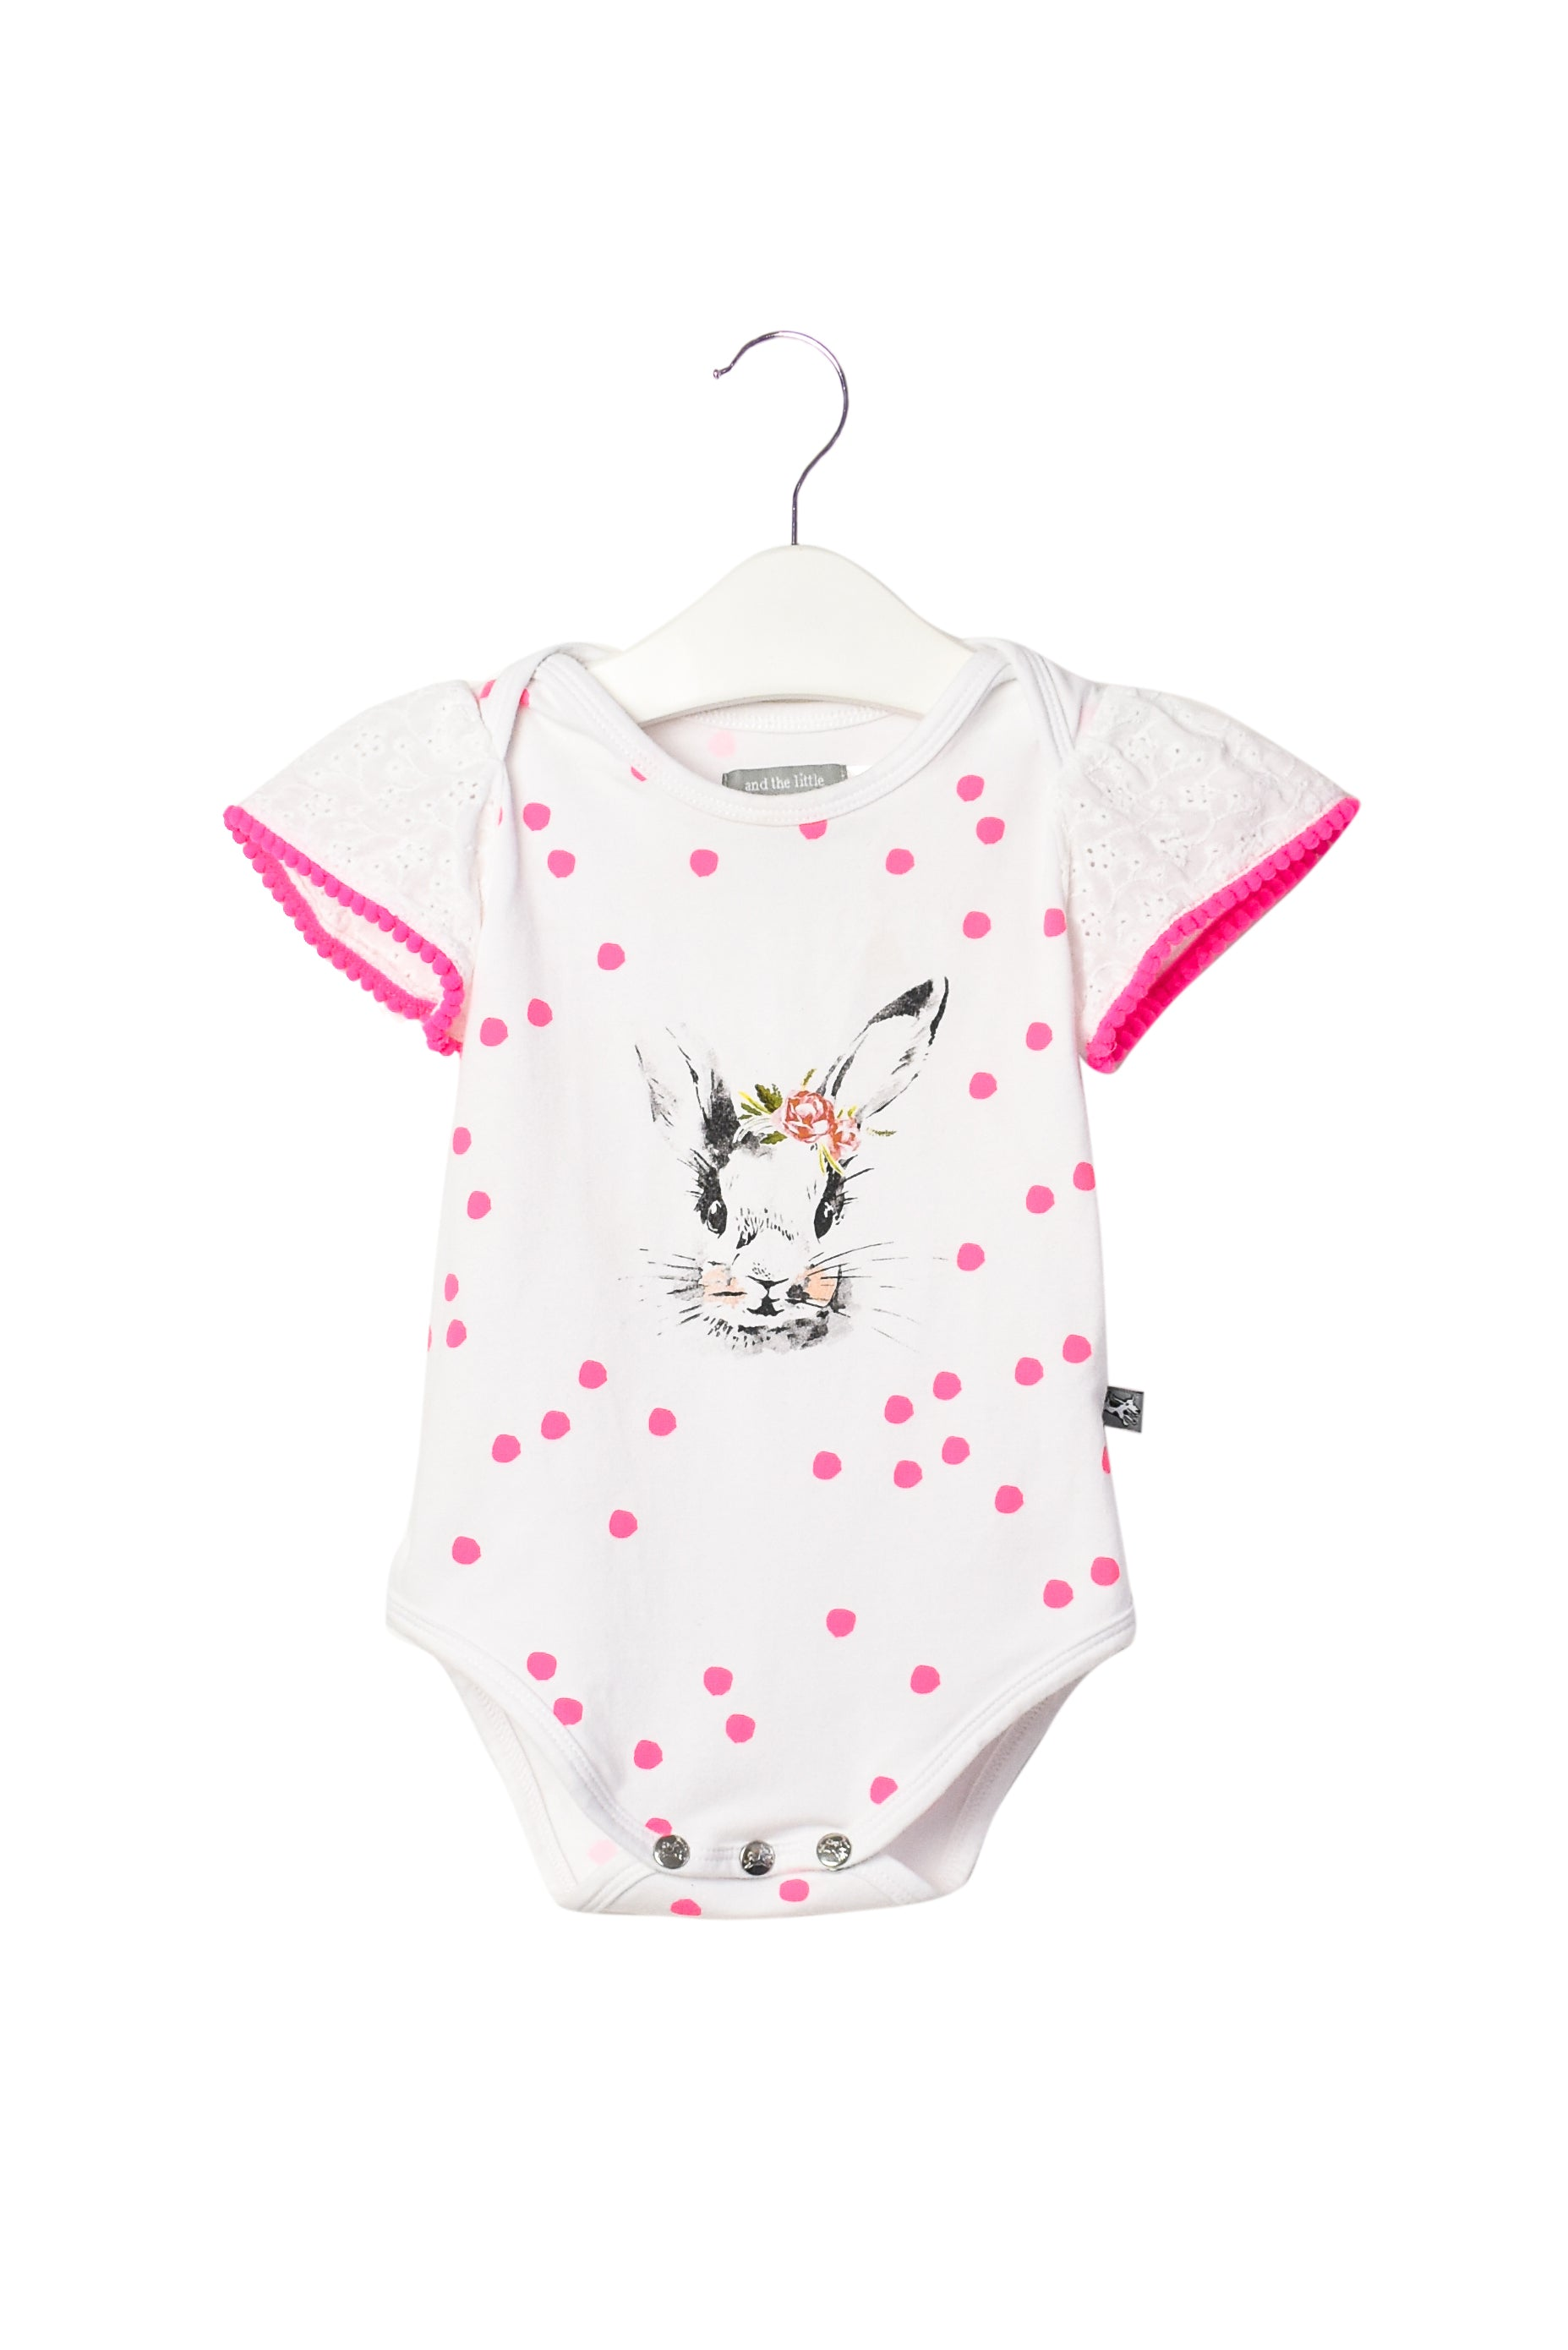 10006224 And The Little Dog Laughed Baby~ Bodysuit 12-18M, And The Little Dog Laughed Retykle | Online Baby & Kids Clothing Hong Kong